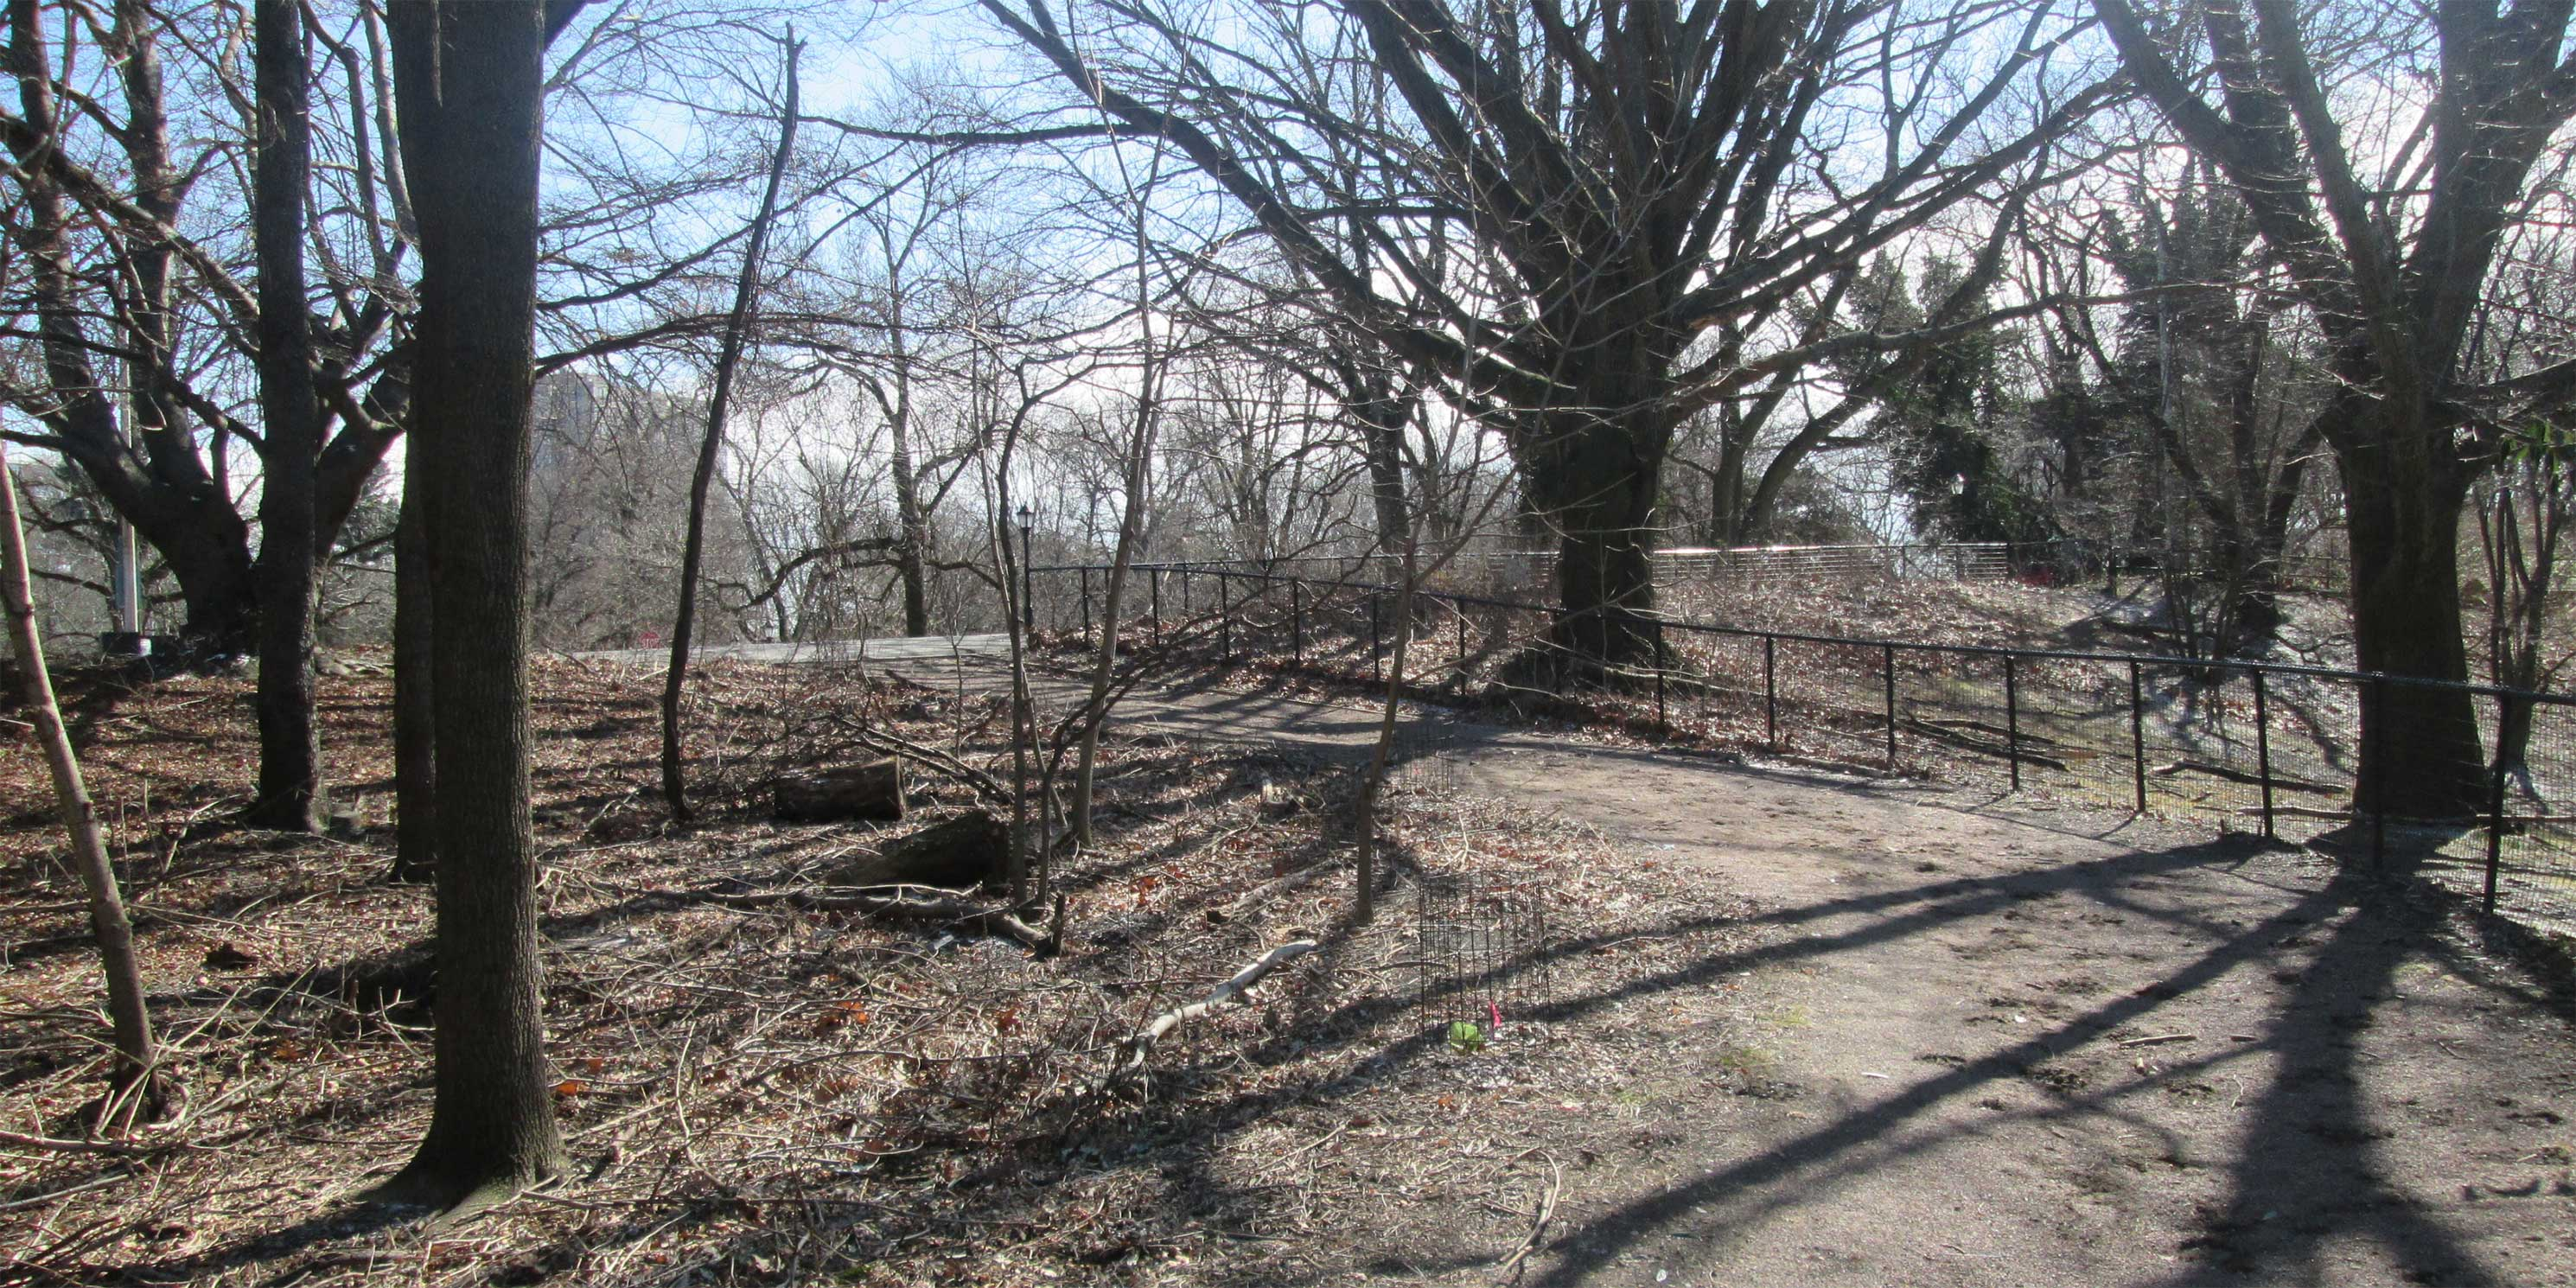 trees and gravel path in Propsect Park, Brooklyn